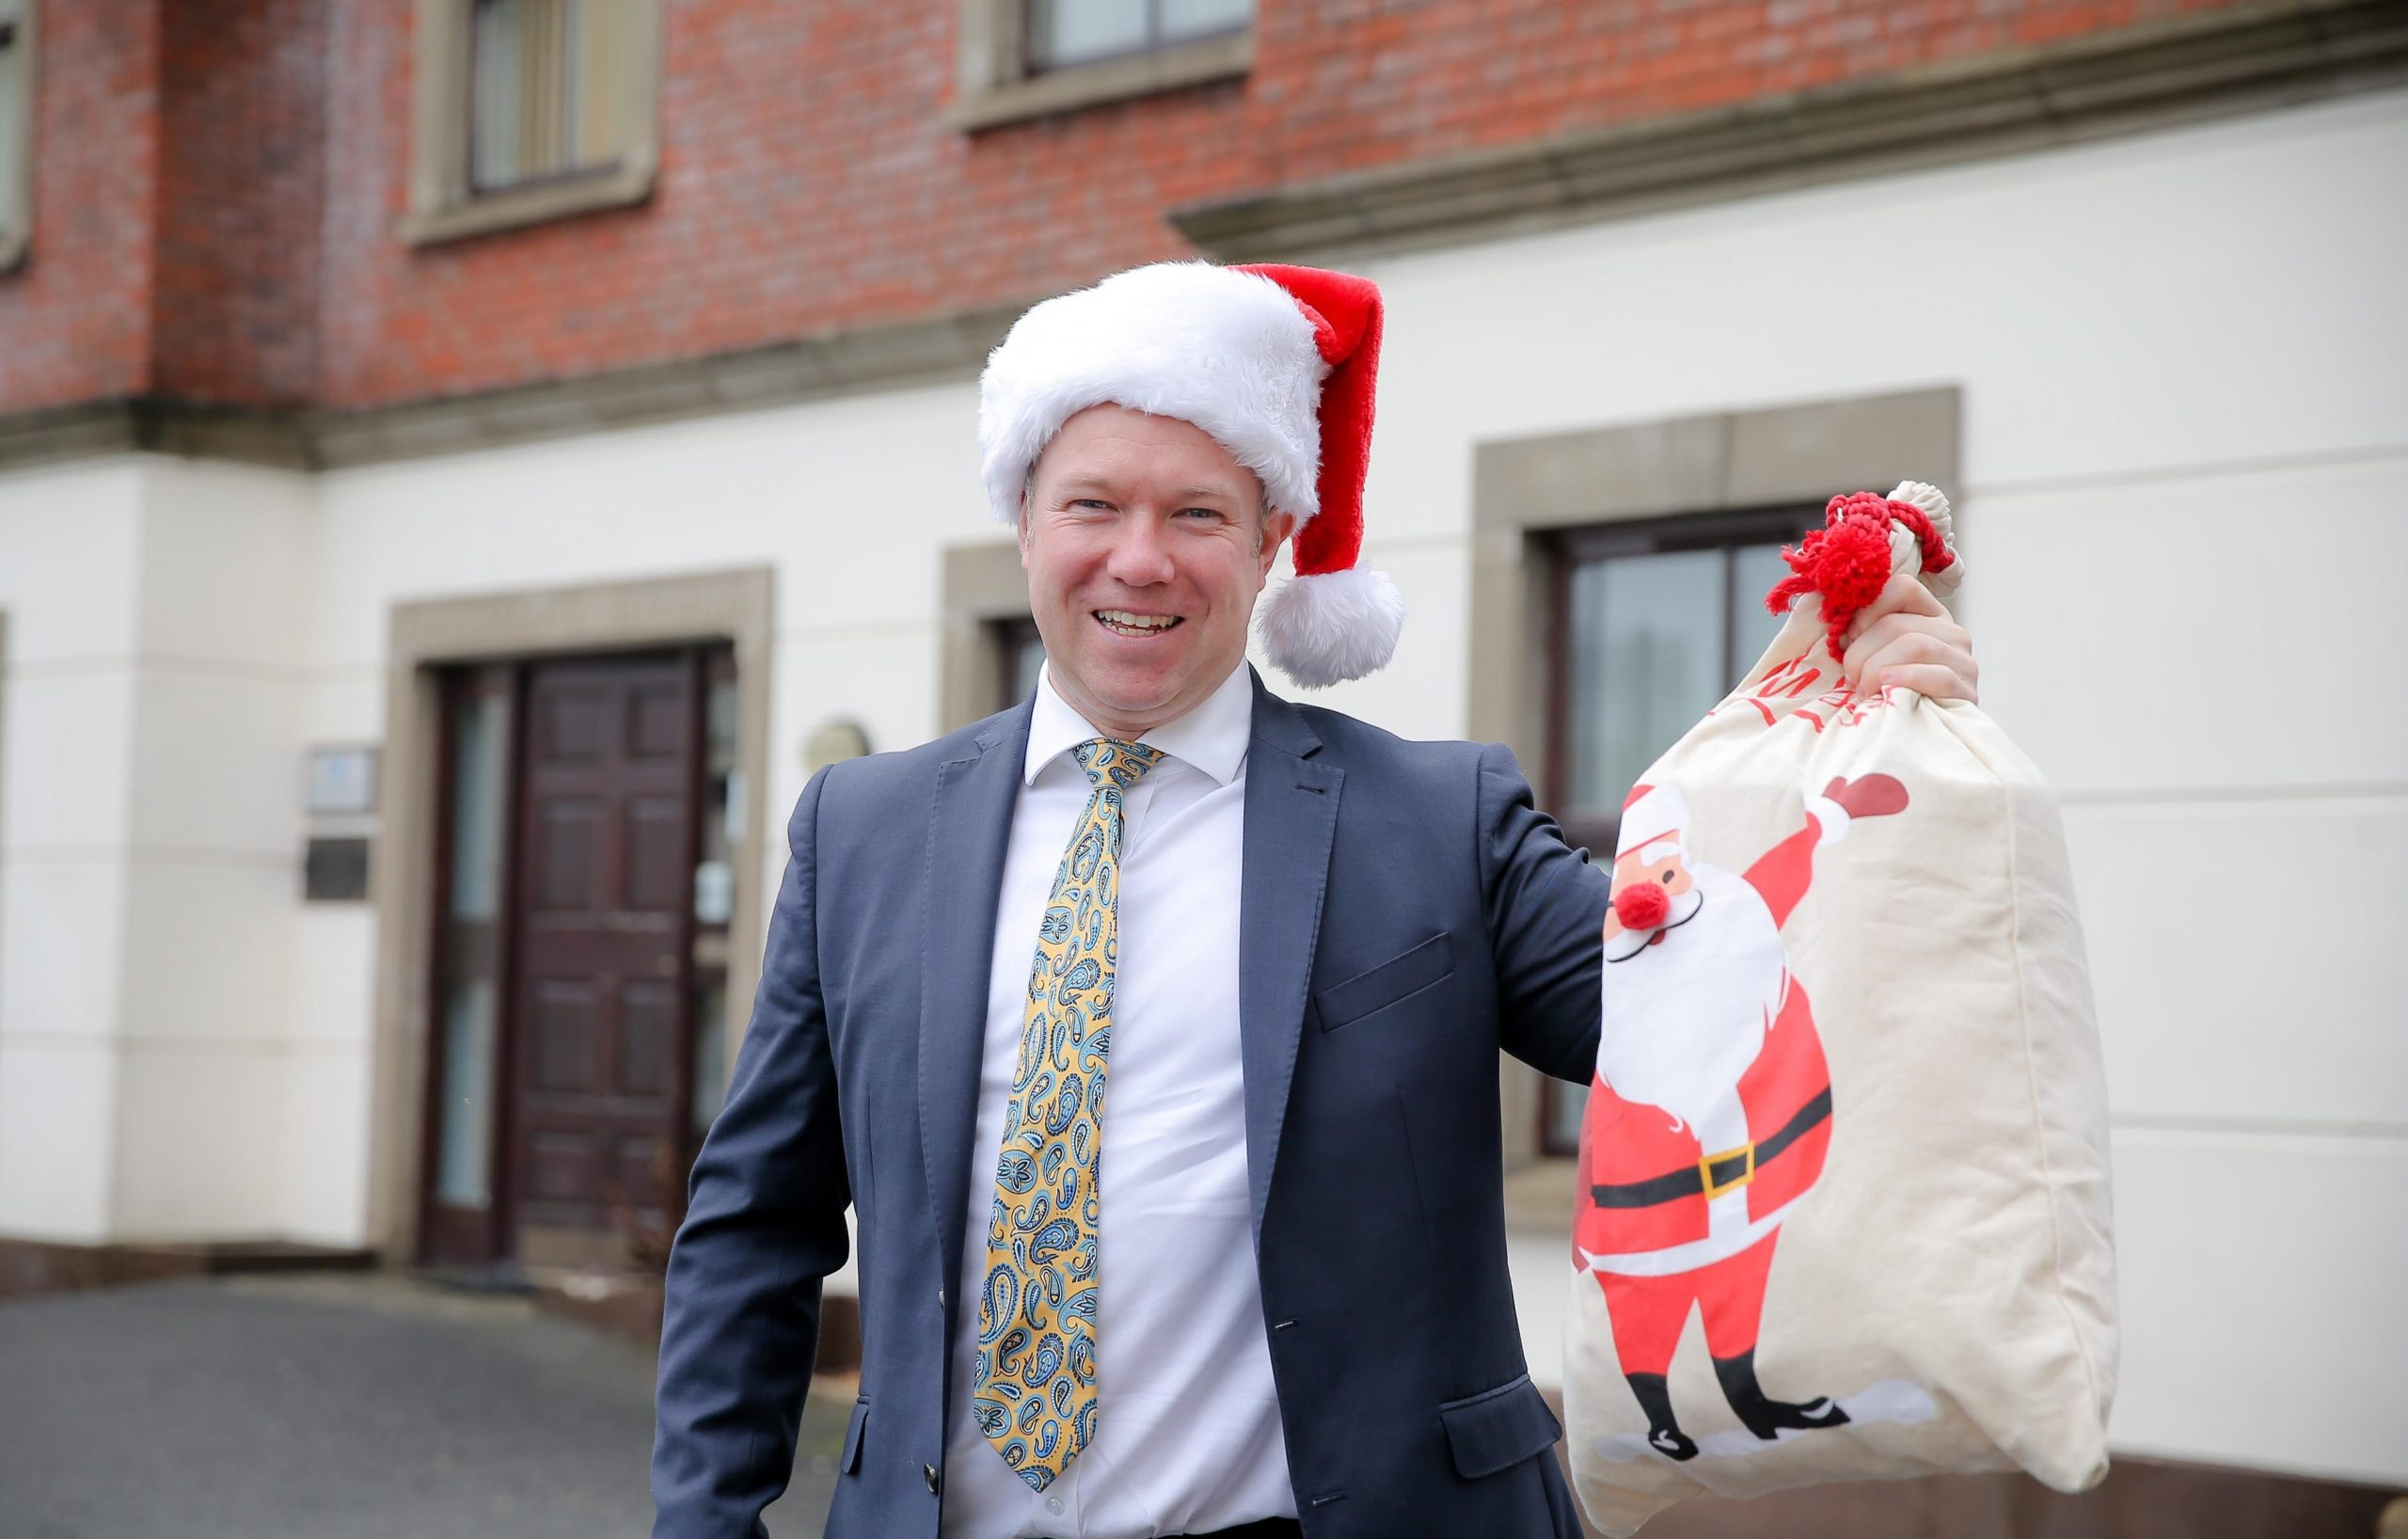 TAX-FRIENDLY CHRISTMAS: Gary Laverty, director at Exchange Accountants, claims that Christmas can be a season of goodwill for NI companies if they take advantage of some seasonal benefits on offer from HMRC.